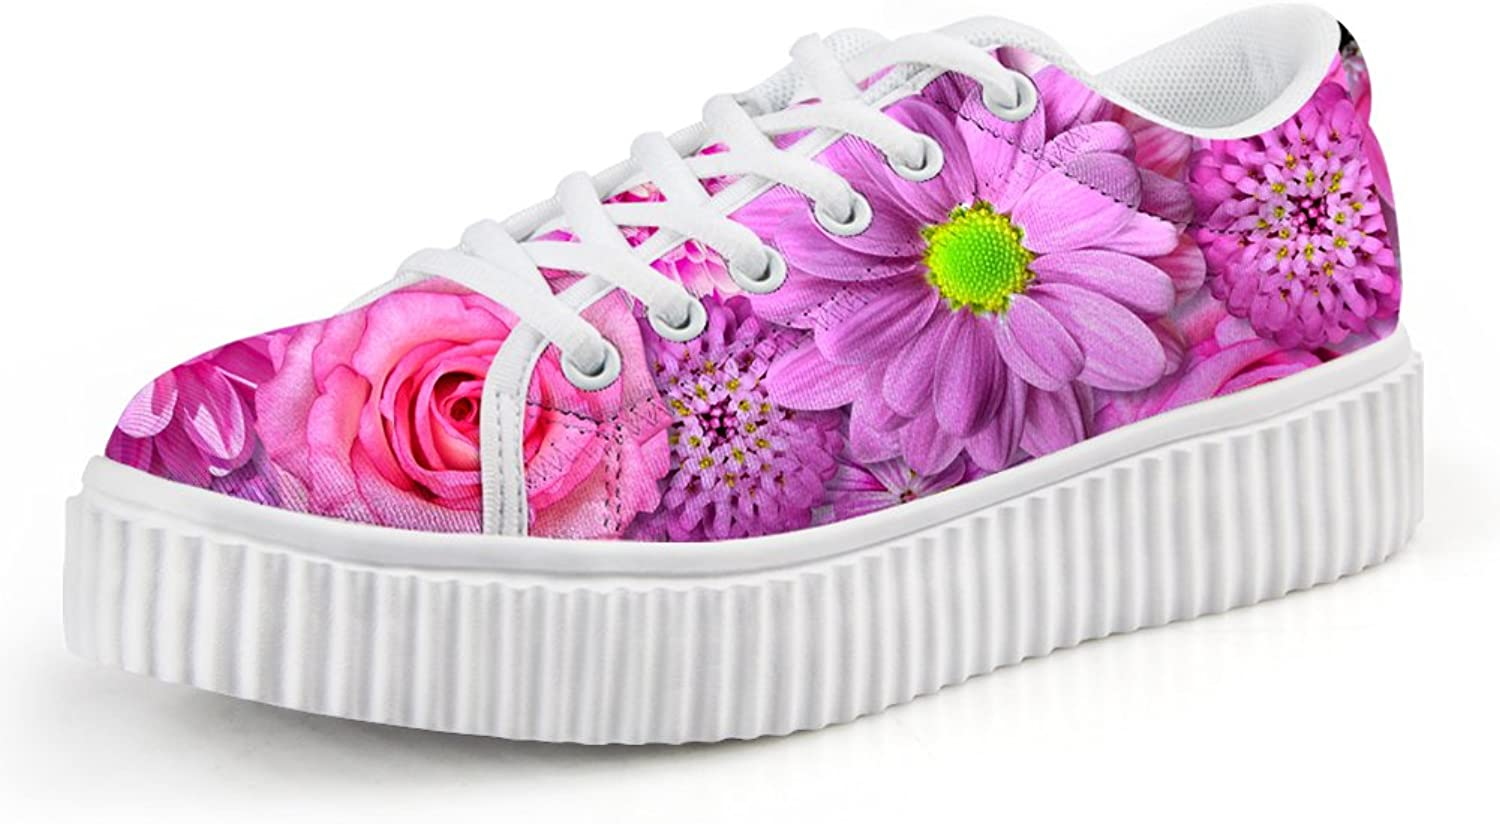 Chaqlin Pink Floral Flat shoes for College Girls Lace-up Size 36